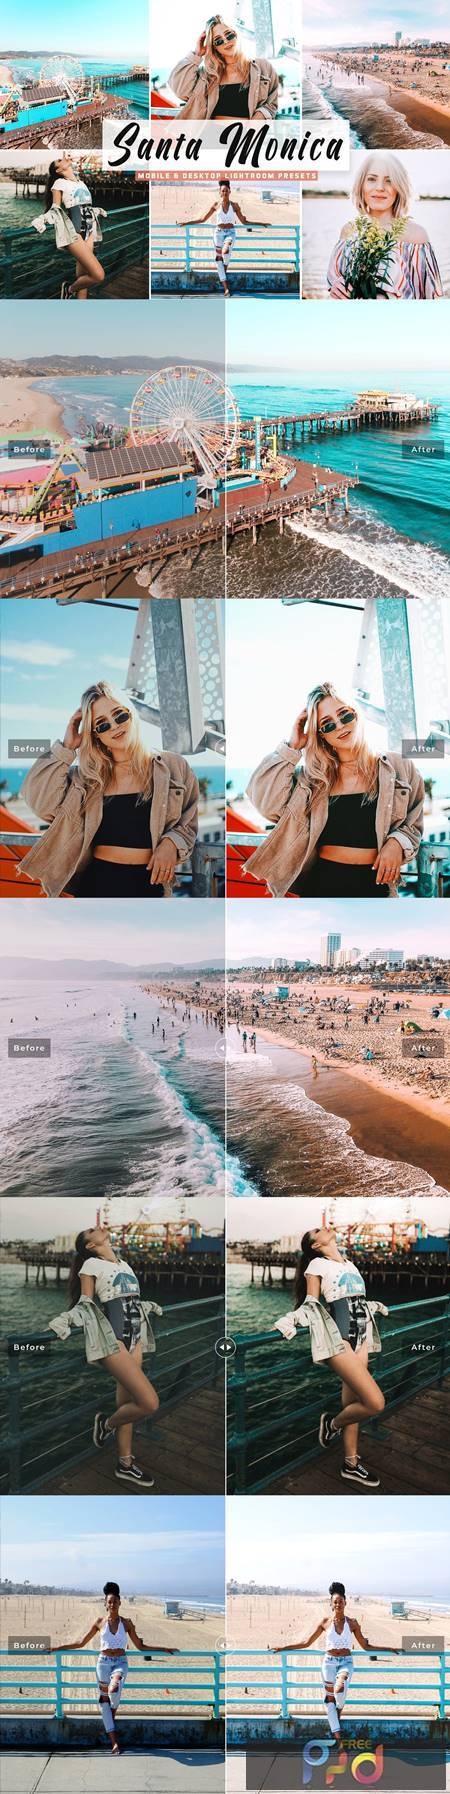 Santa Monica Pro Lightroom Presets 5333867 1